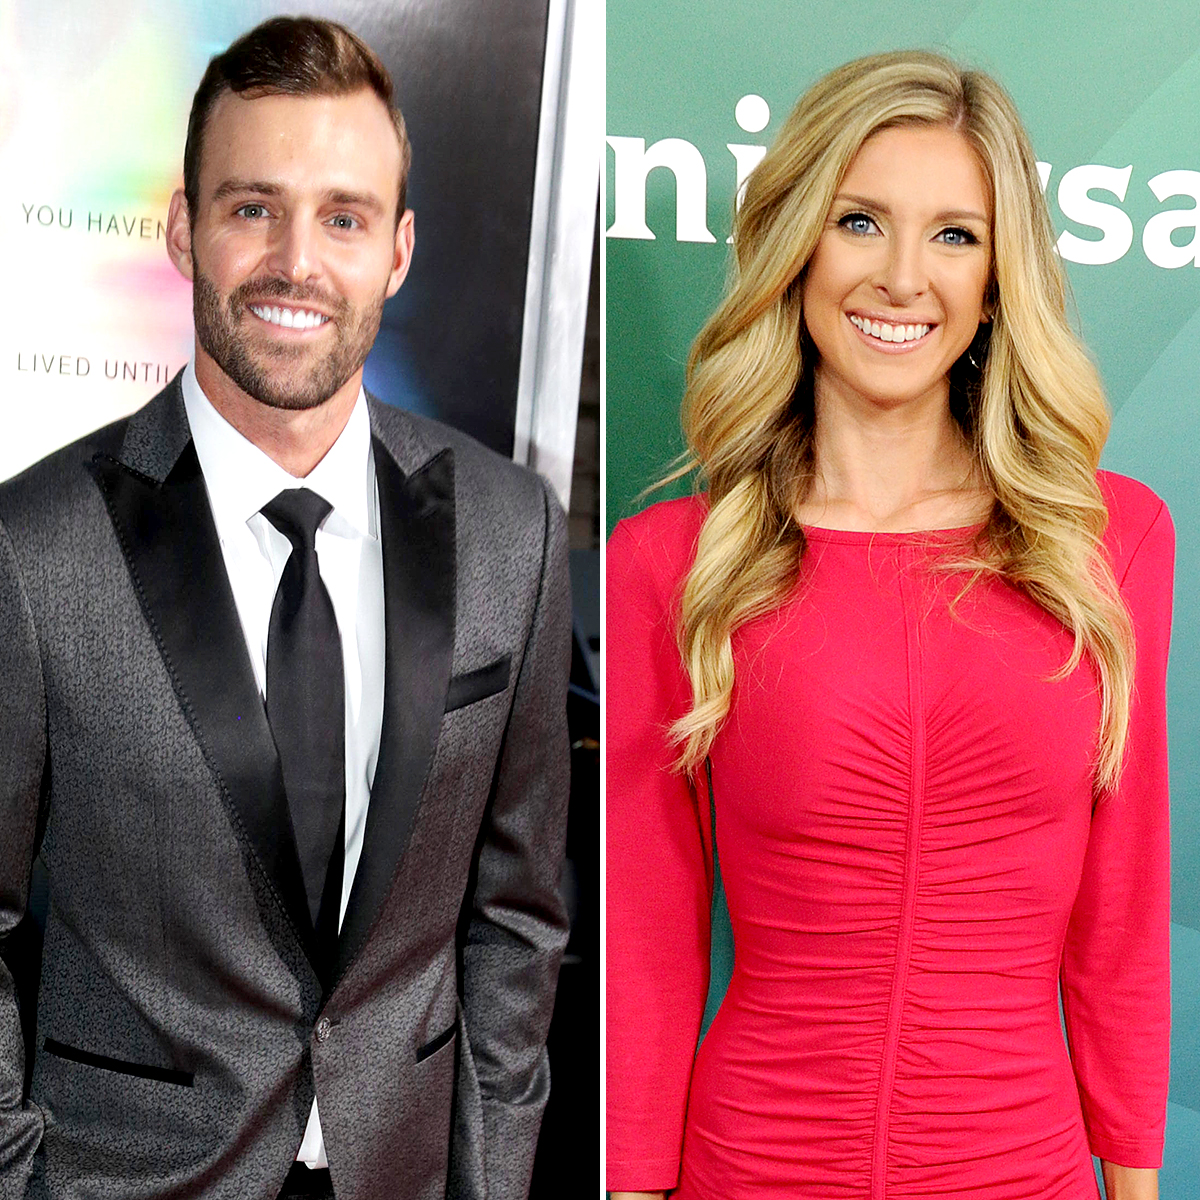 Robby-Hayes-Breaks-His-Silence-on-Rumored-Sex-Tape-With-Todd-Chrisley's-Daughter-Lindsie